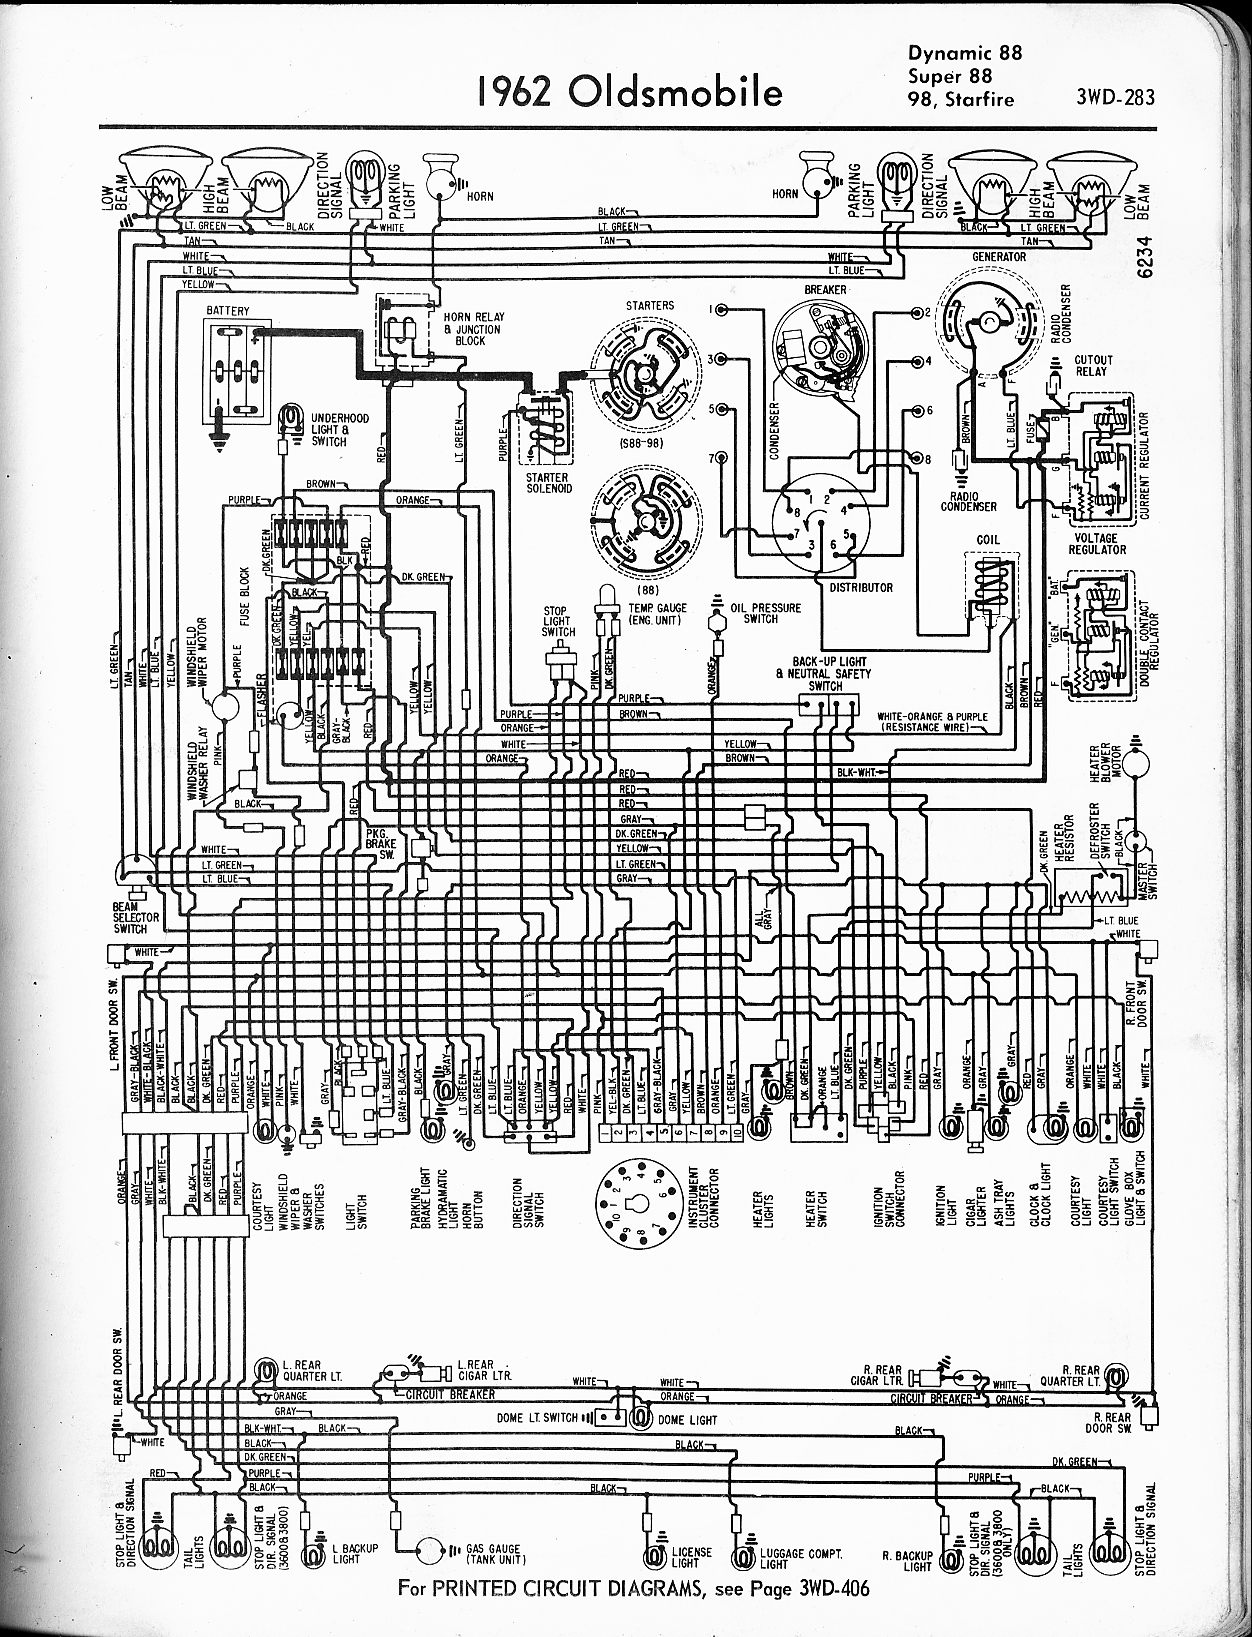 1966 Pontiac Bonneville Wiring Diagram Simple Guide About Honda Gl1100 Oldsmobile Diagrams The Old Car Manual Project